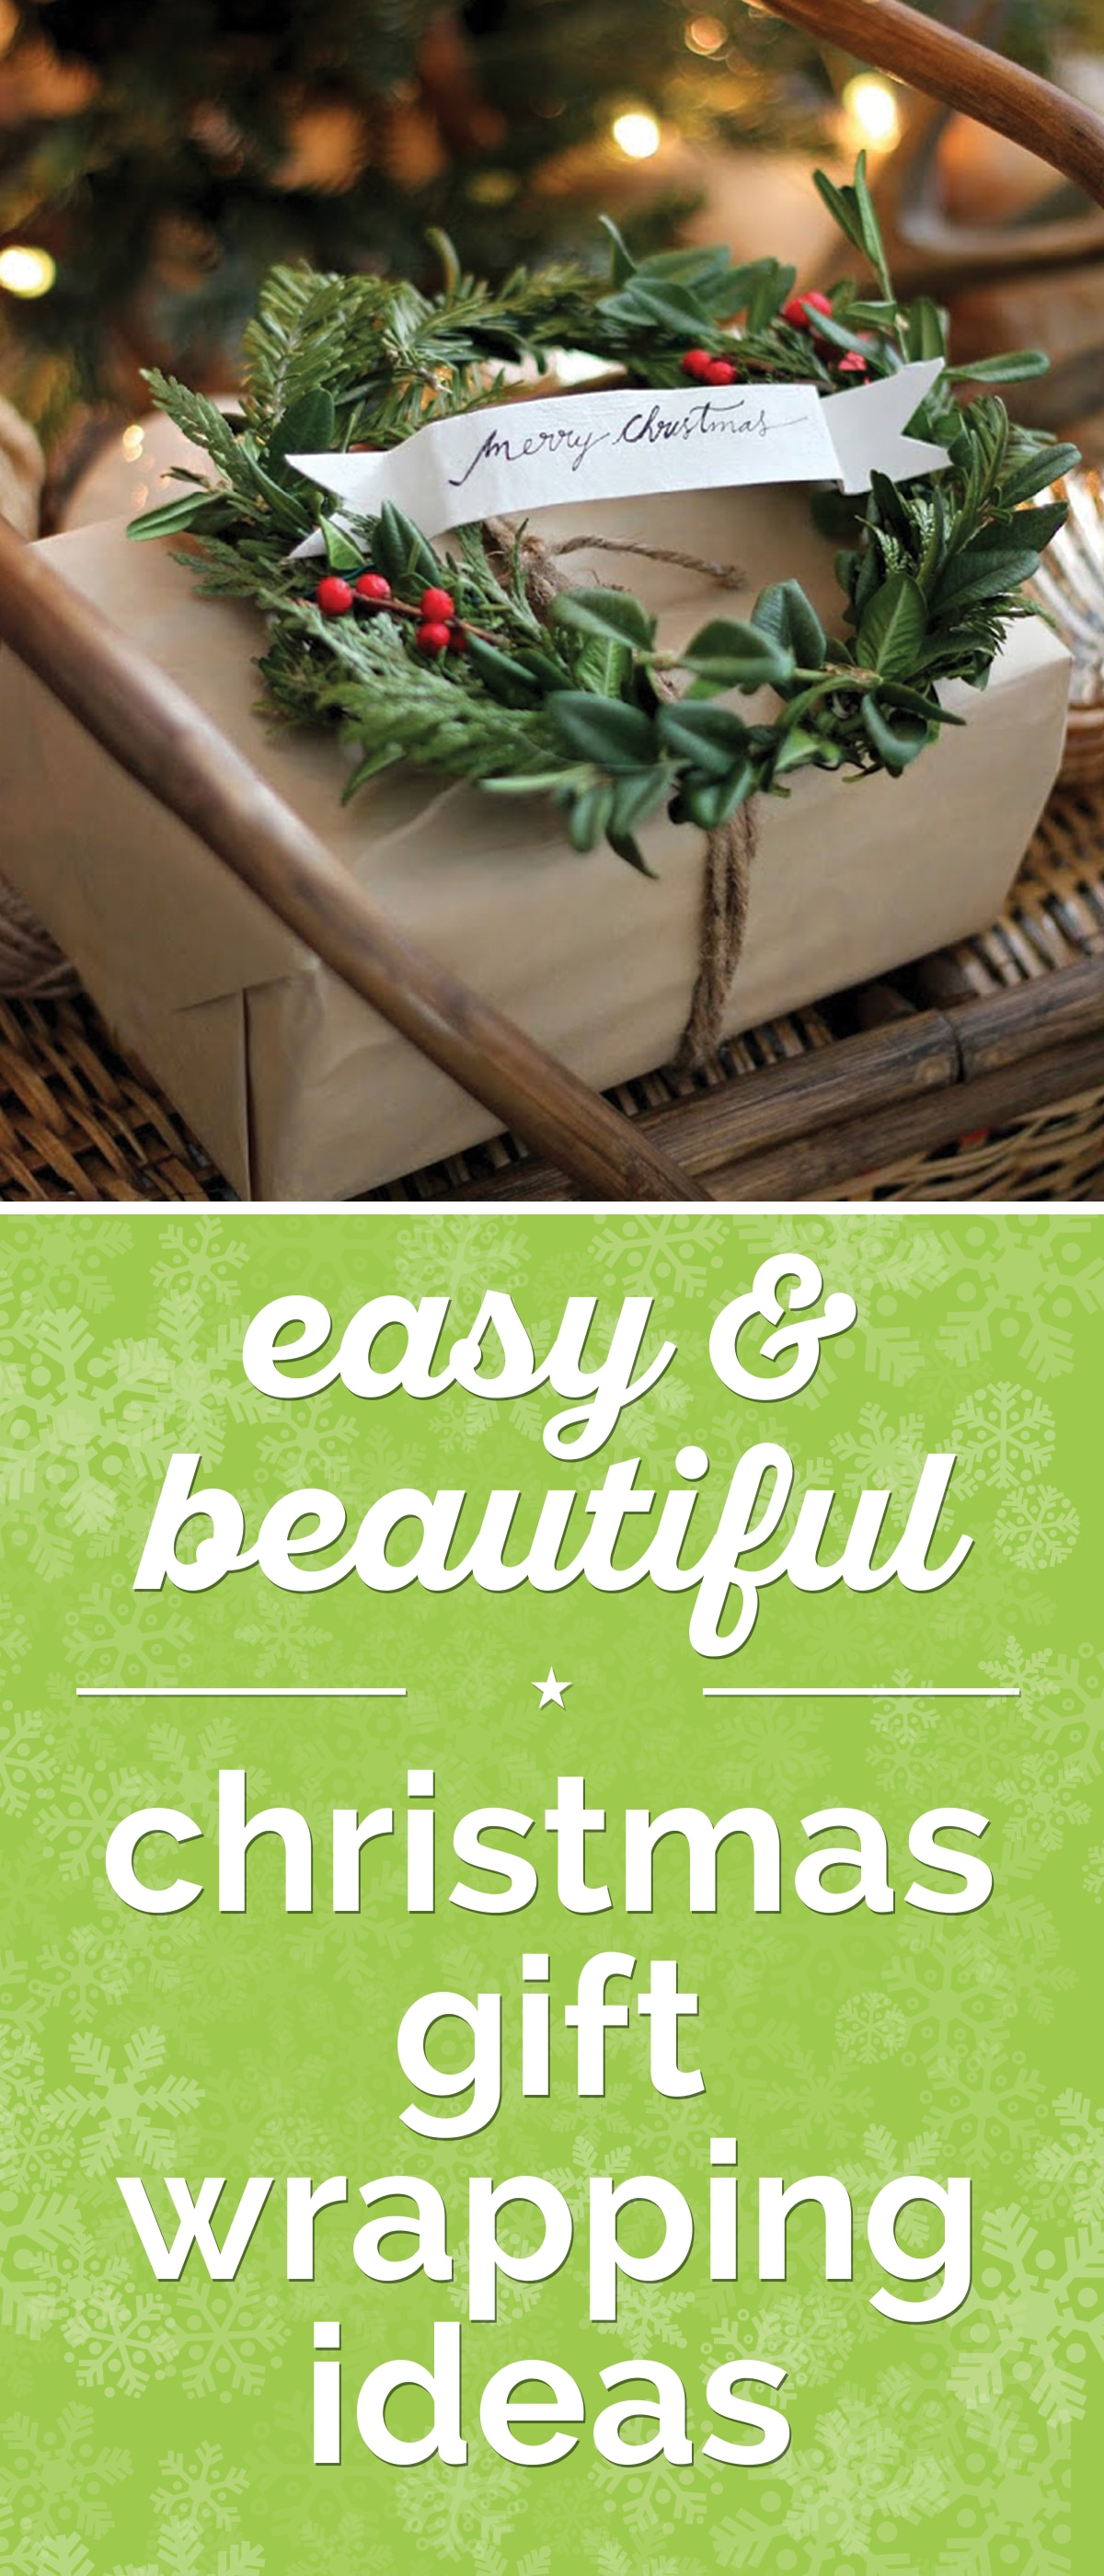 65+ Easy & Beautiful Christmas Gift Wrapping Ideas | thegoodstuff